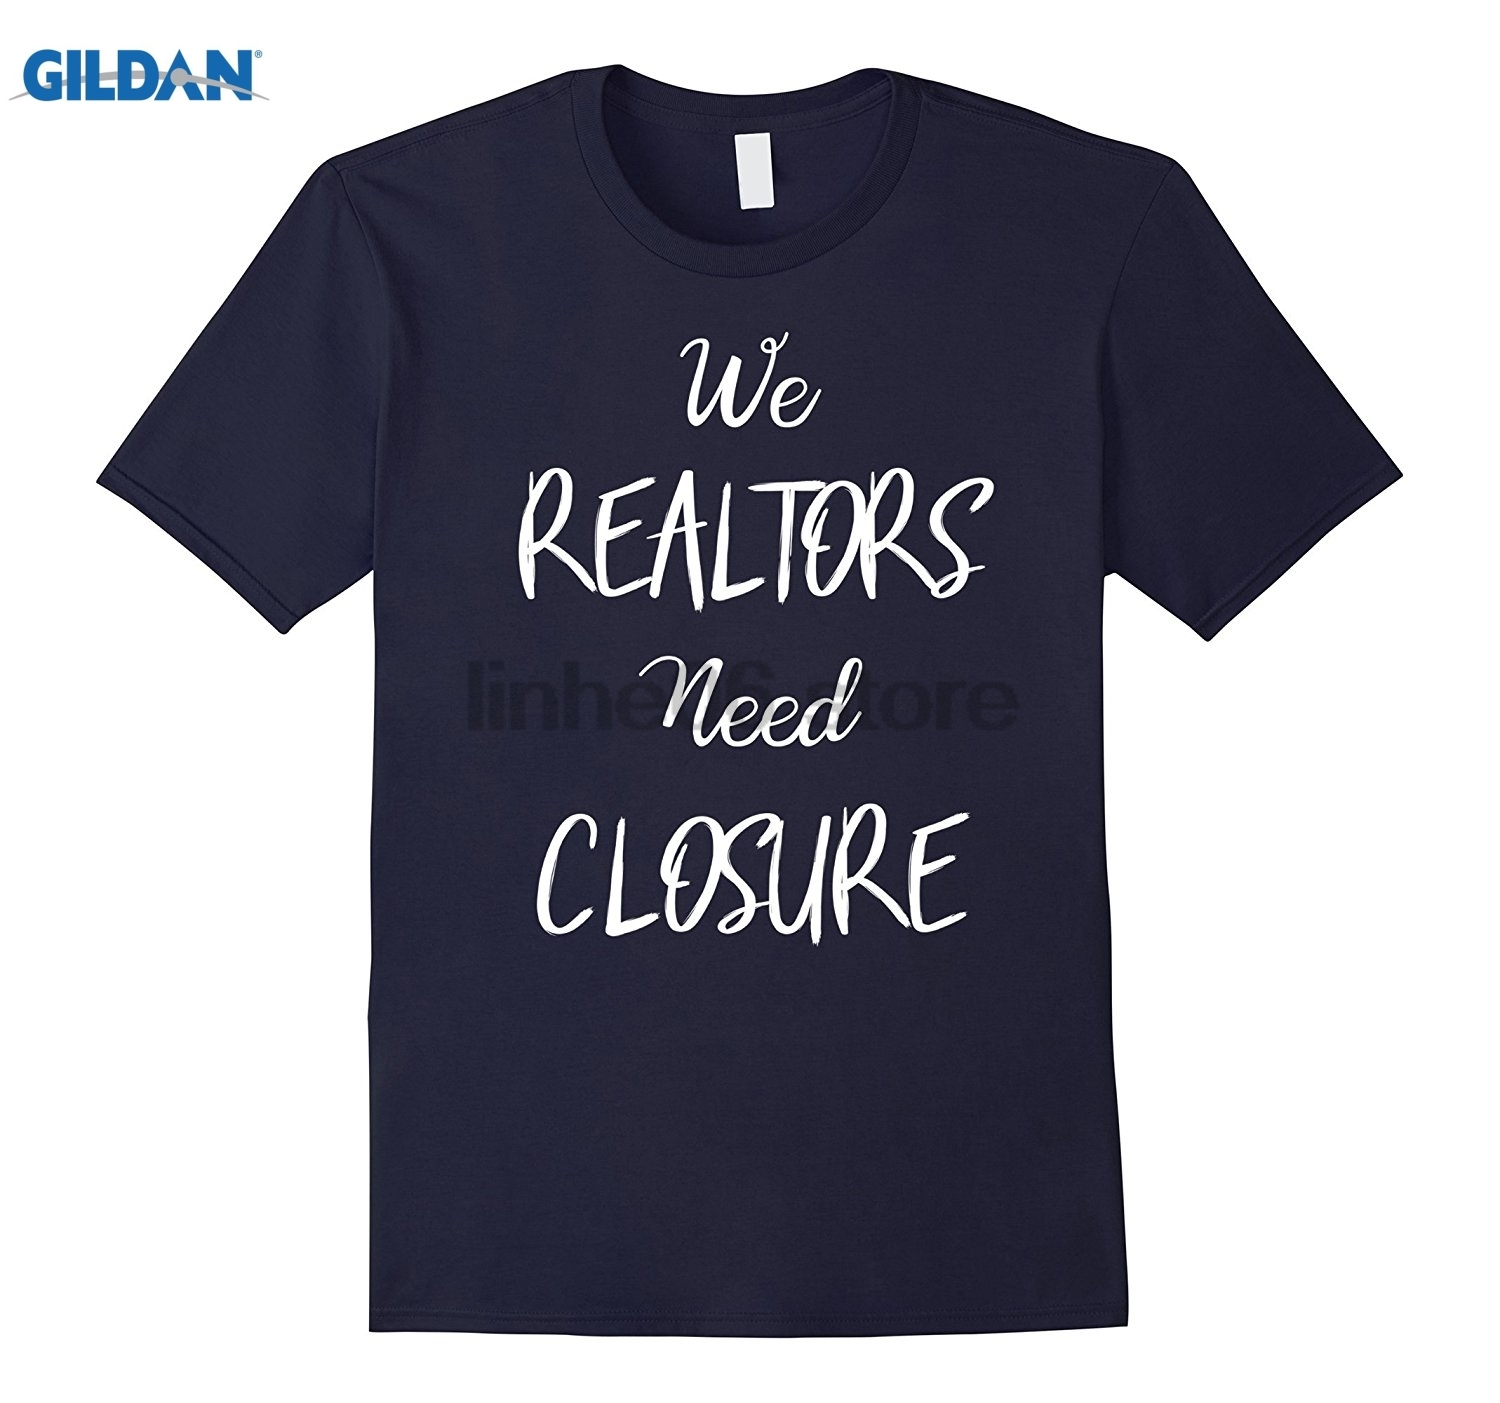 GILDAN Real Estate T-Shirt Realtor Tee Real Estate Agent T-Shirt Round neck short sleeve casual T-shirt Hot Womens T-shirt